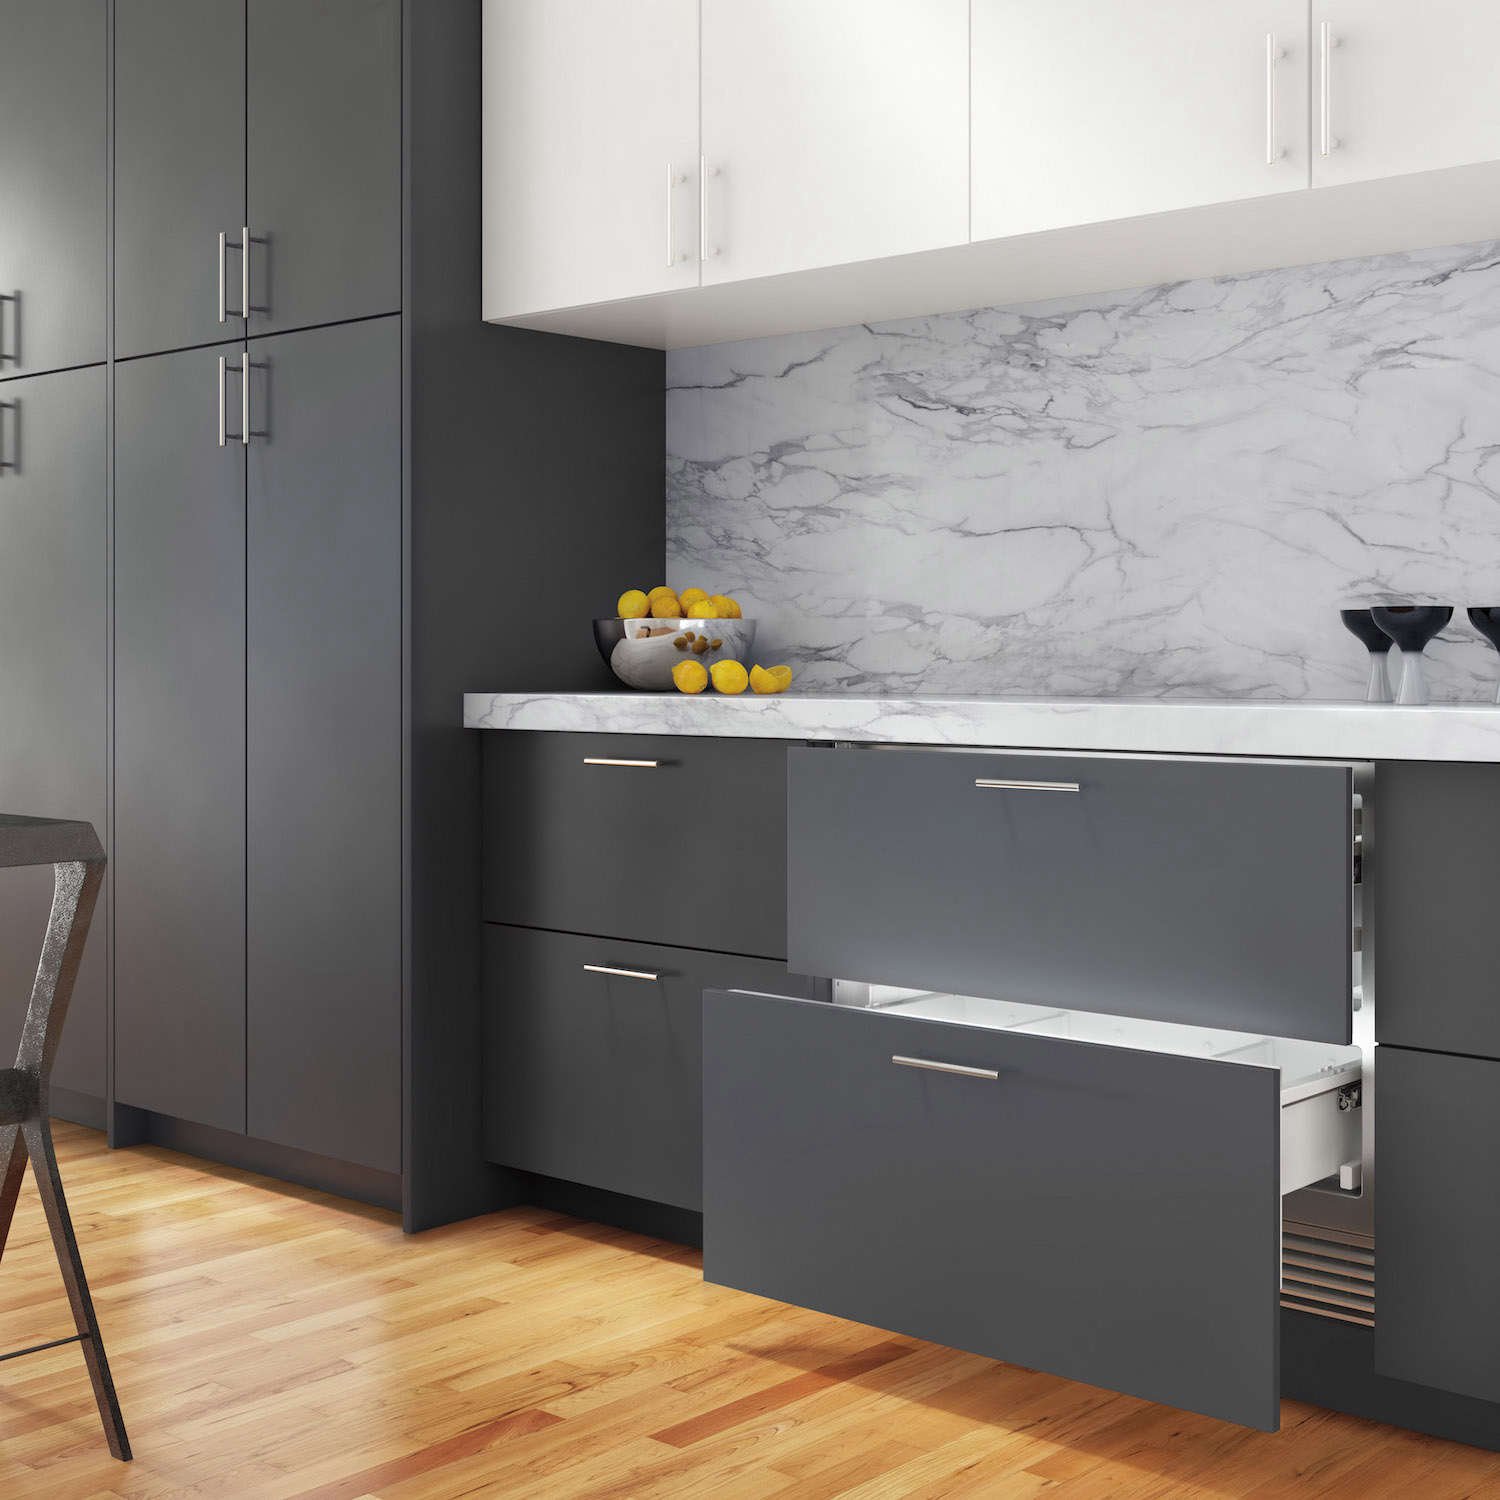 The Subzero 36 Inch Designer Refrigerator Drawers are panel ready as shown here in situ; $4,985 through Subzero dealers.